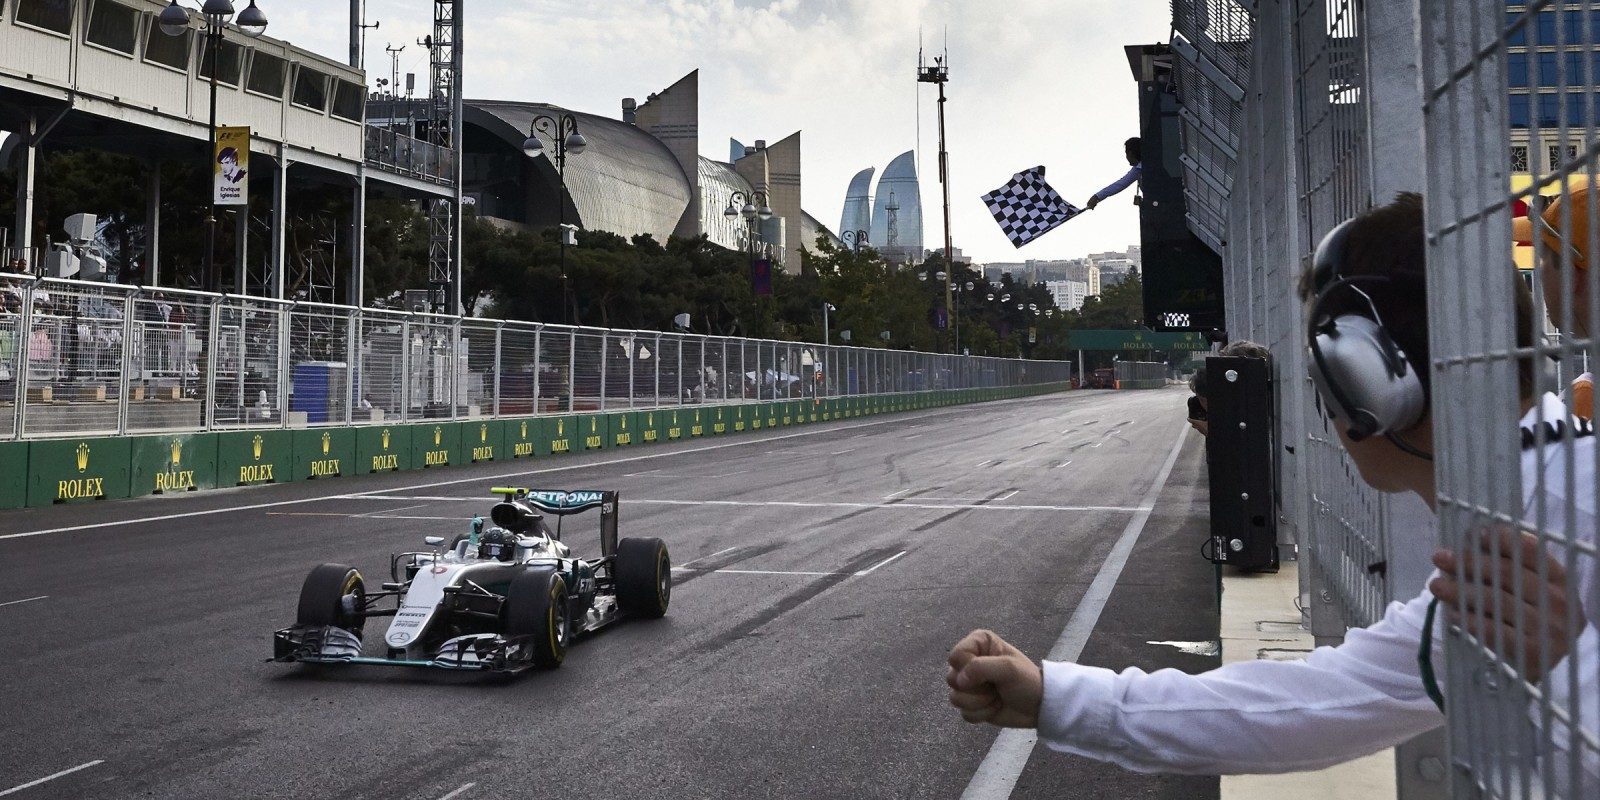 Race day images from the 2016 European Grand Prix in Baku Azerbaijan